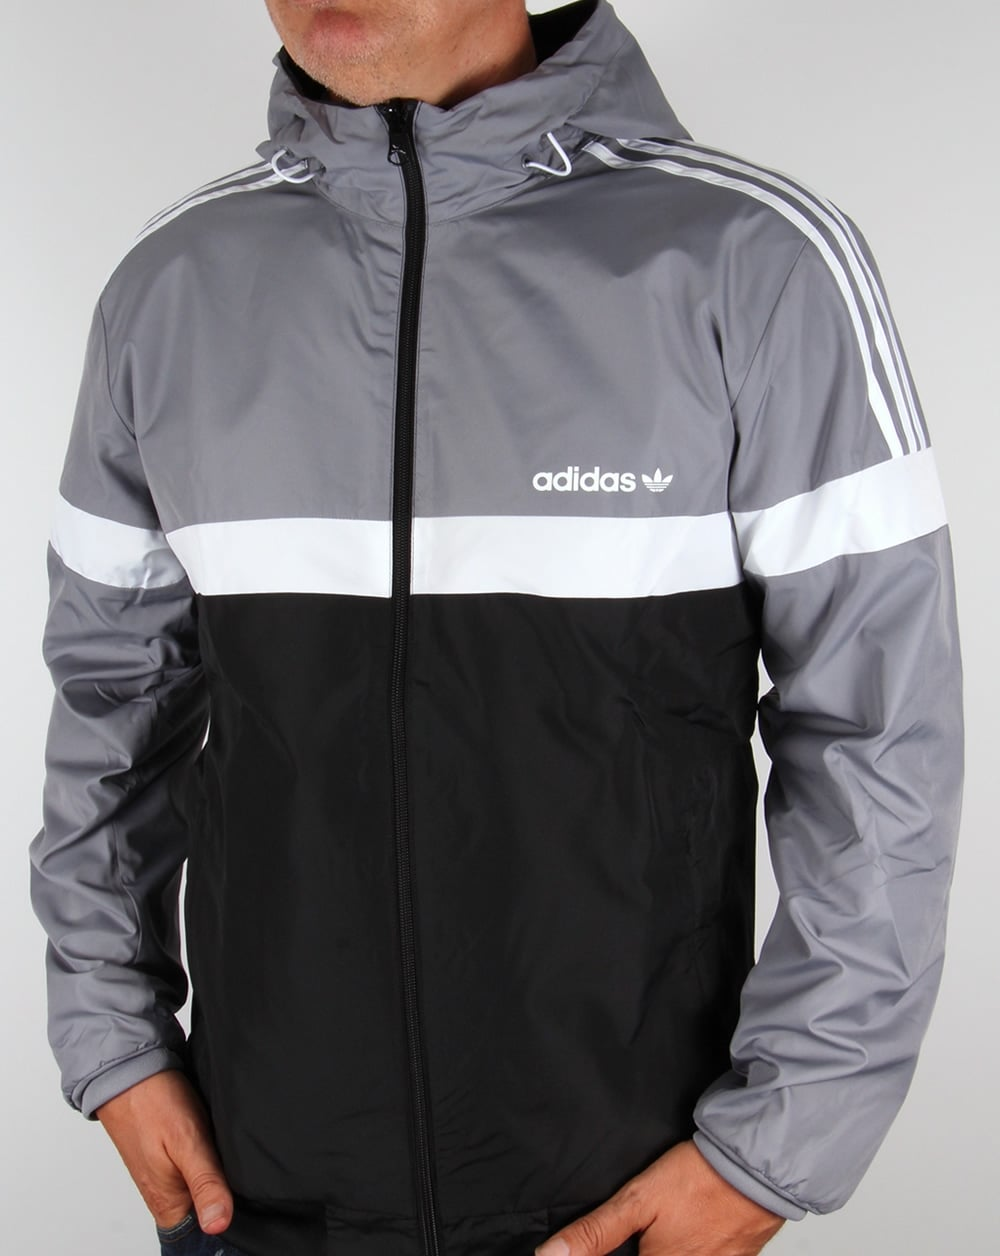 adidas originals reversible windbreaker grey black jacket. Black Bedroom Furniture Sets. Home Design Ideas